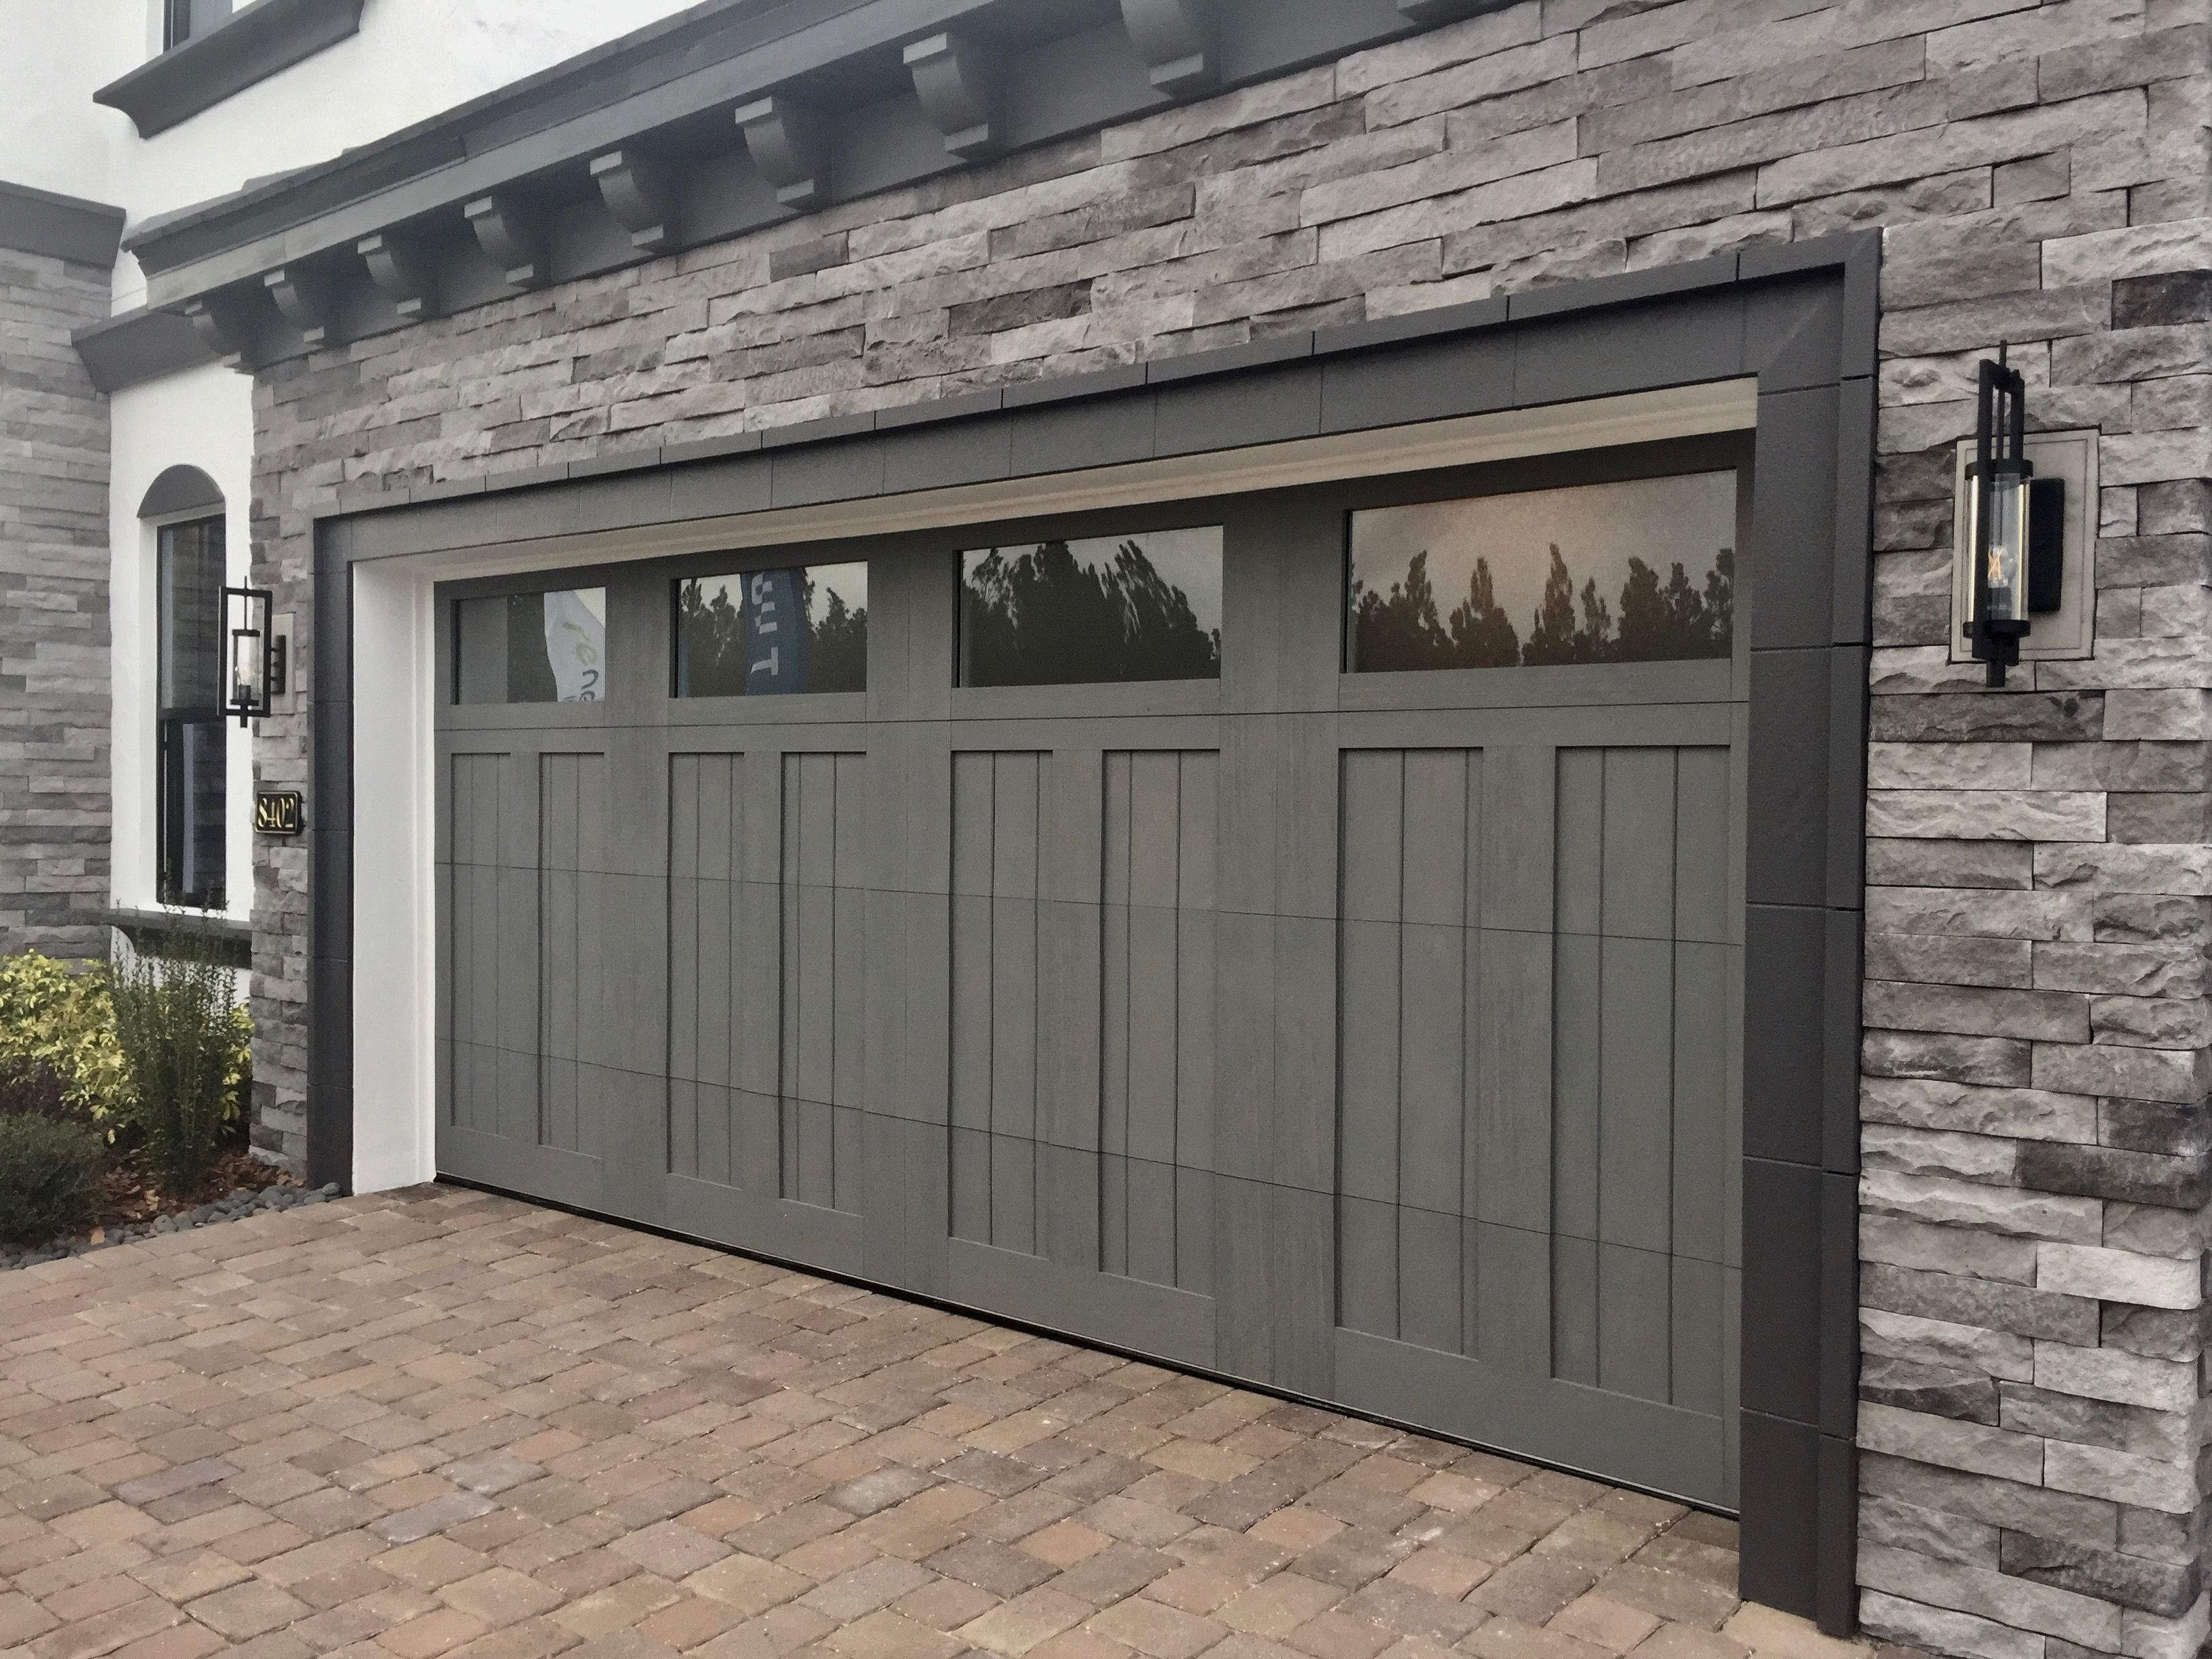 Gray Garage Door Clopay Canyon Ridge Collection Faux Wood Carriage House Garage Door Desig Garage Door Design Garage Door Styles Carriage House Garage Doors